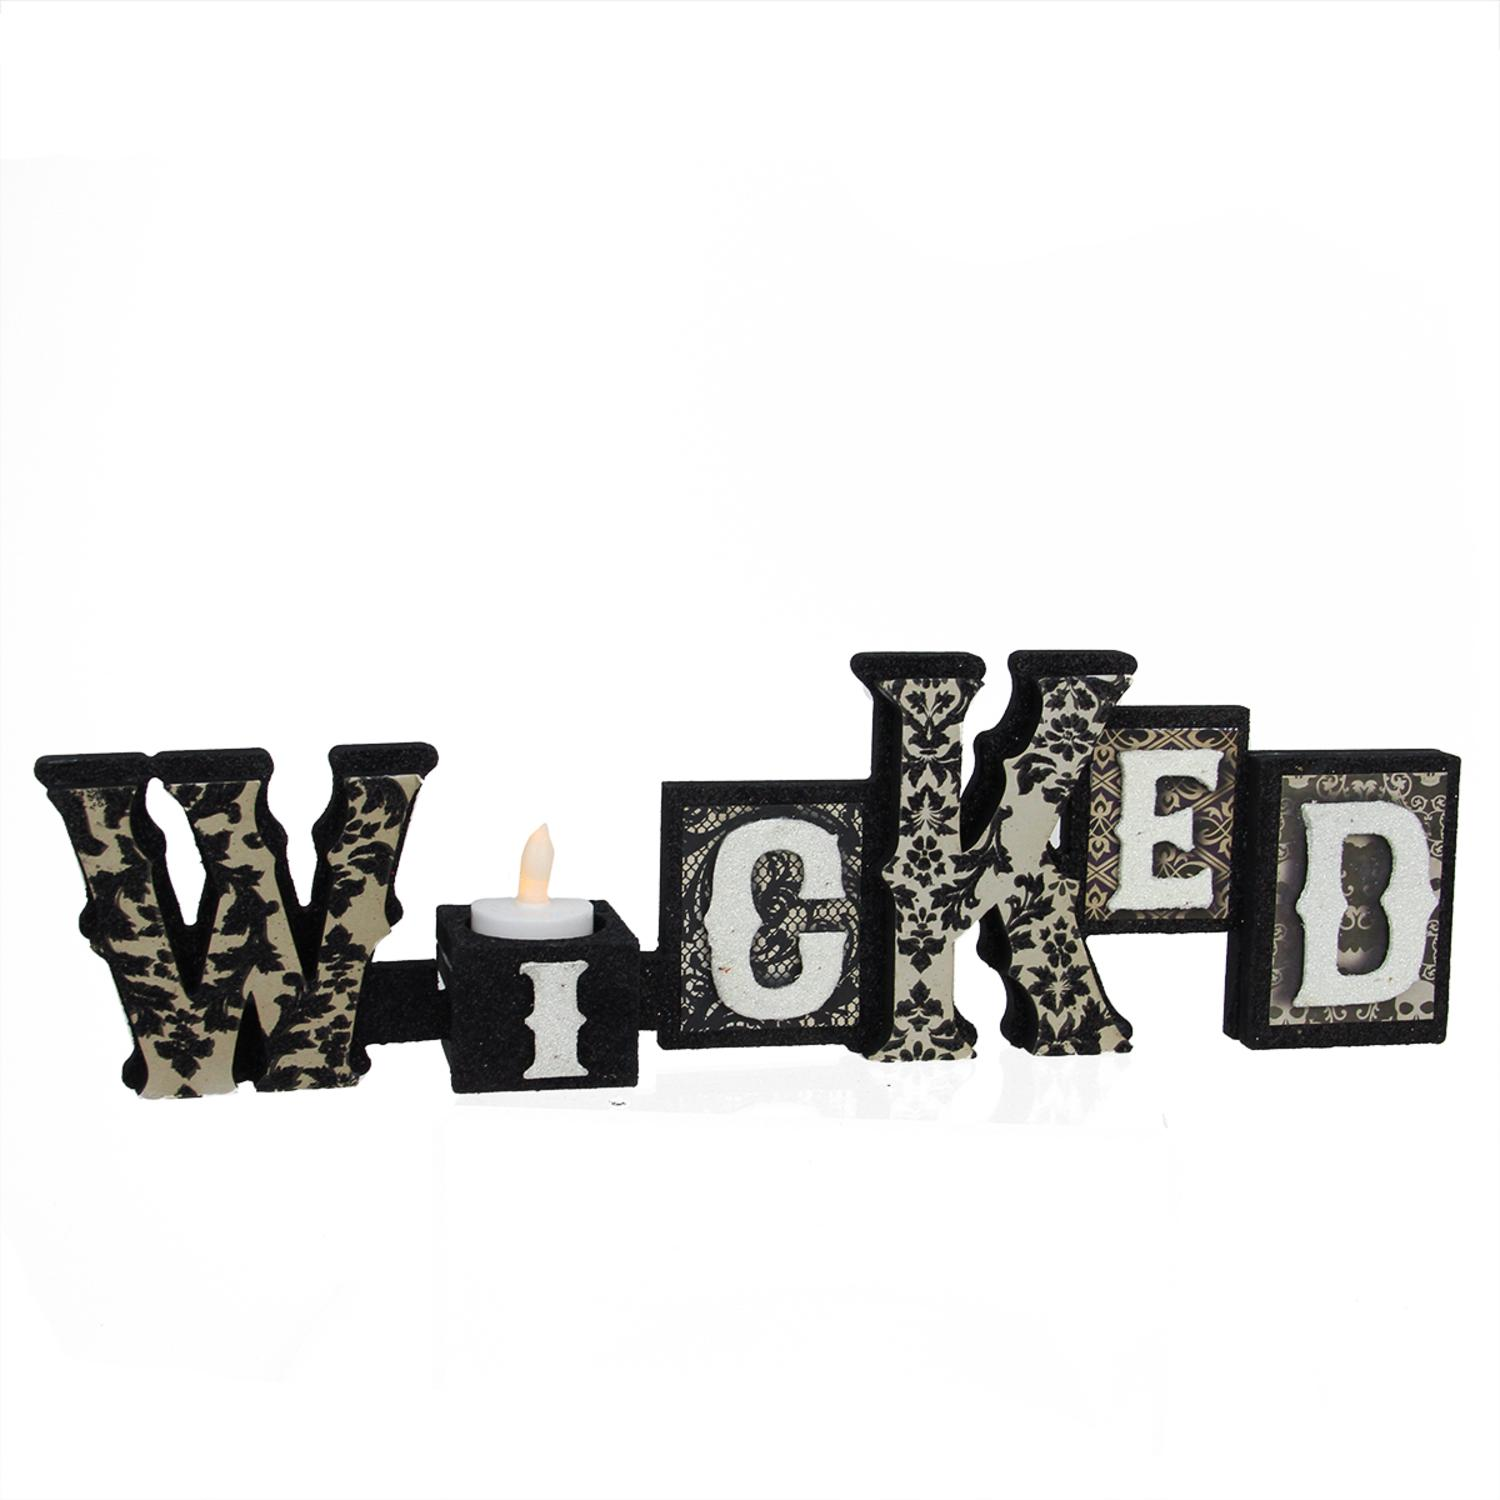 "16"" Black and White Glittered ""Wicked"" Decorative Halloween Candle Holder by Allstate"